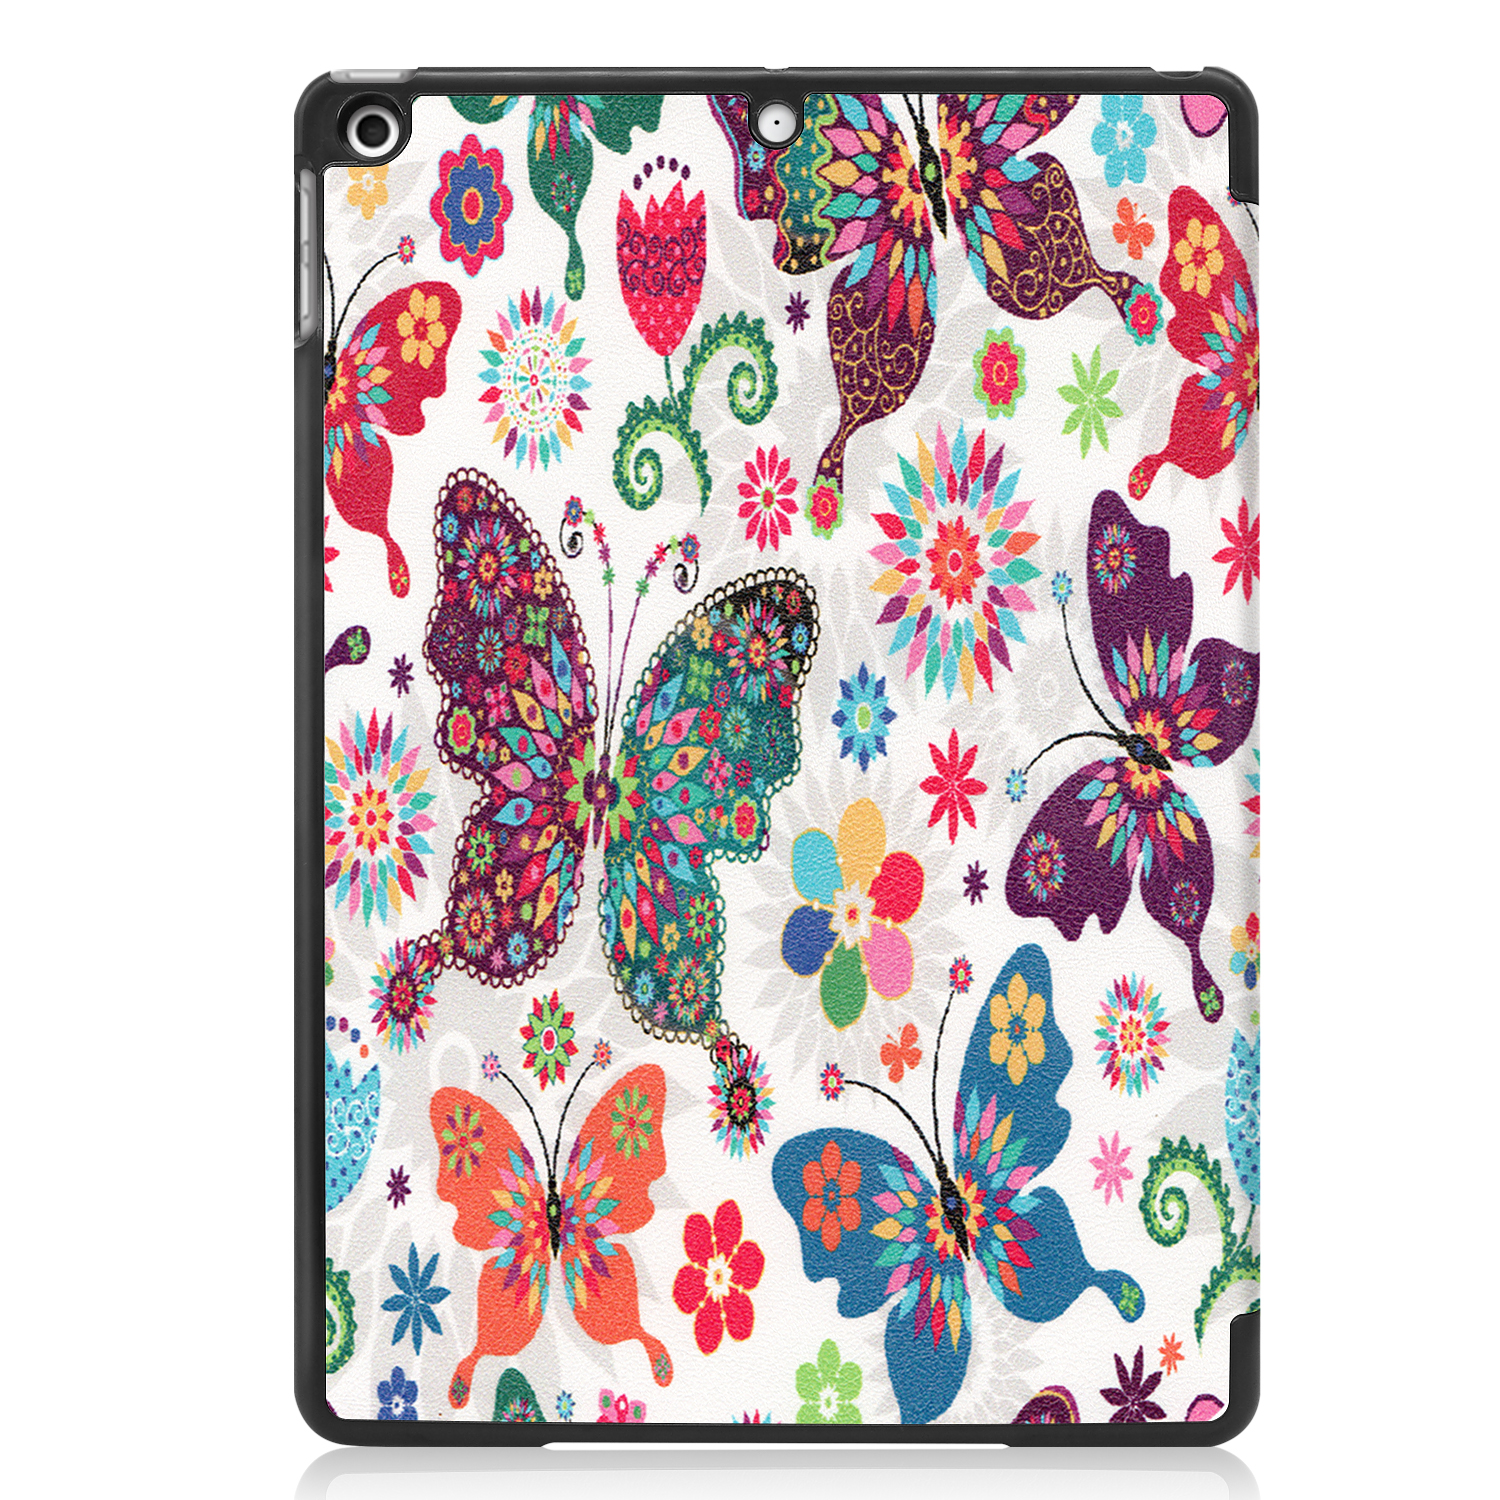 Case iPad/8th/Cas Apple Sleep for A2428/a2429 Smart-Cover 8-8th-Generation Magnetic iPad